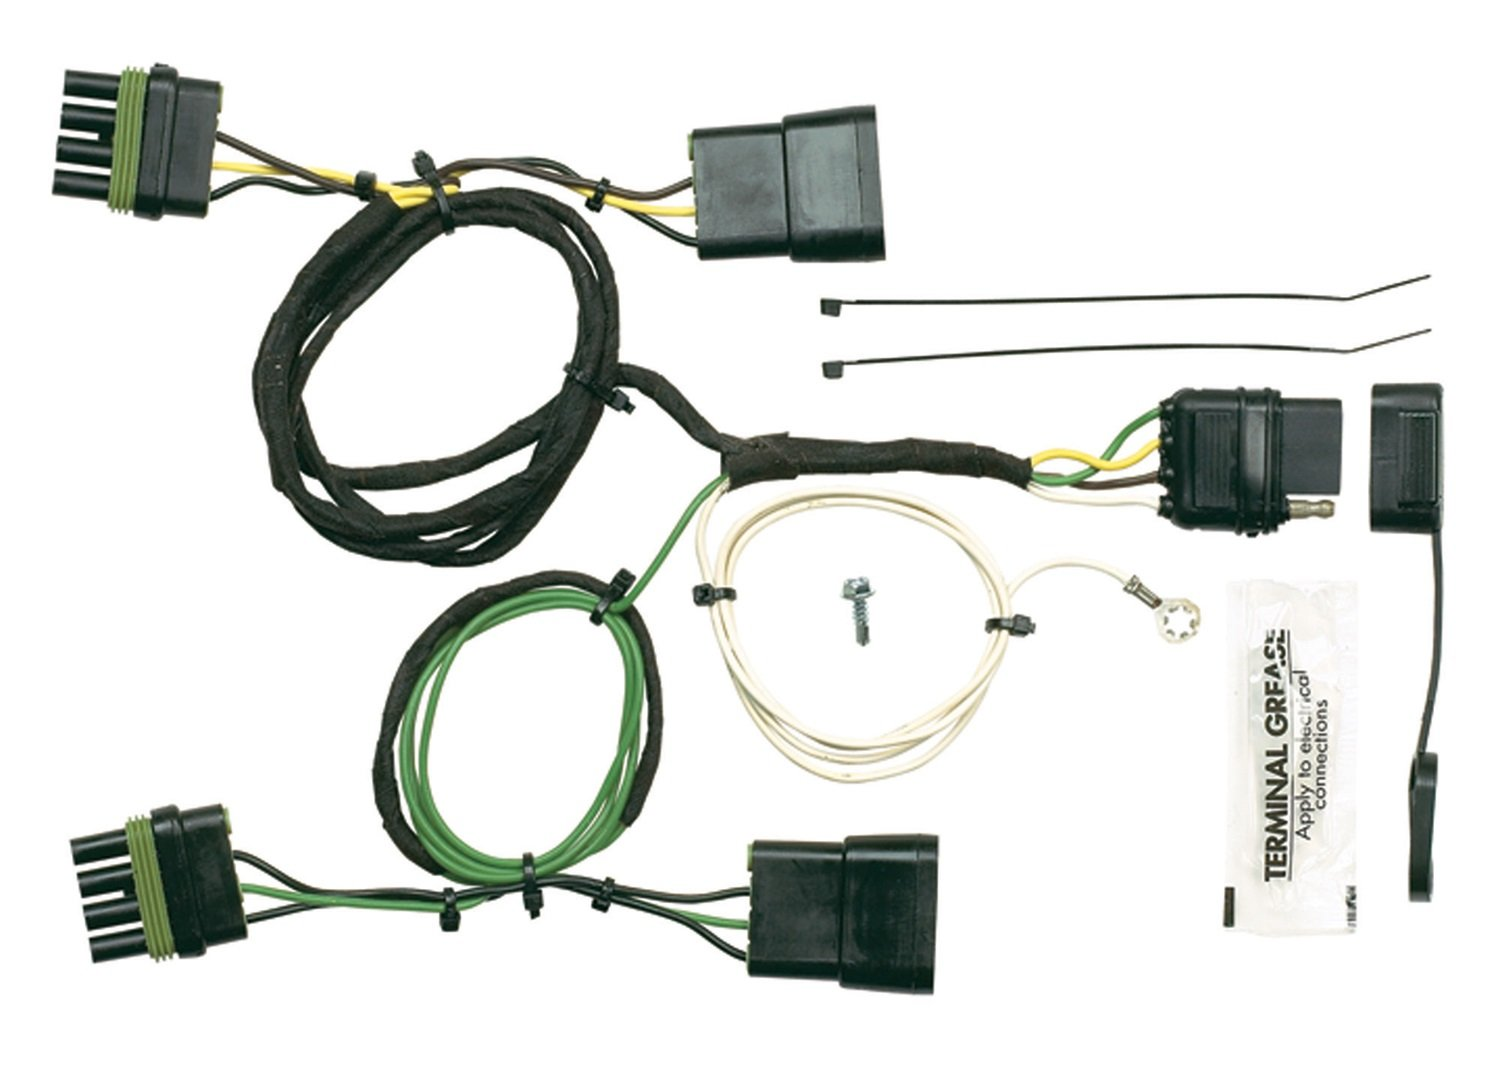 Hopkins 42605 Plug In Simple Vehicle Wiring Kit Automotive Jeep Wrangler Yj Diagram Harness And Electrical System Troubleshooting 95